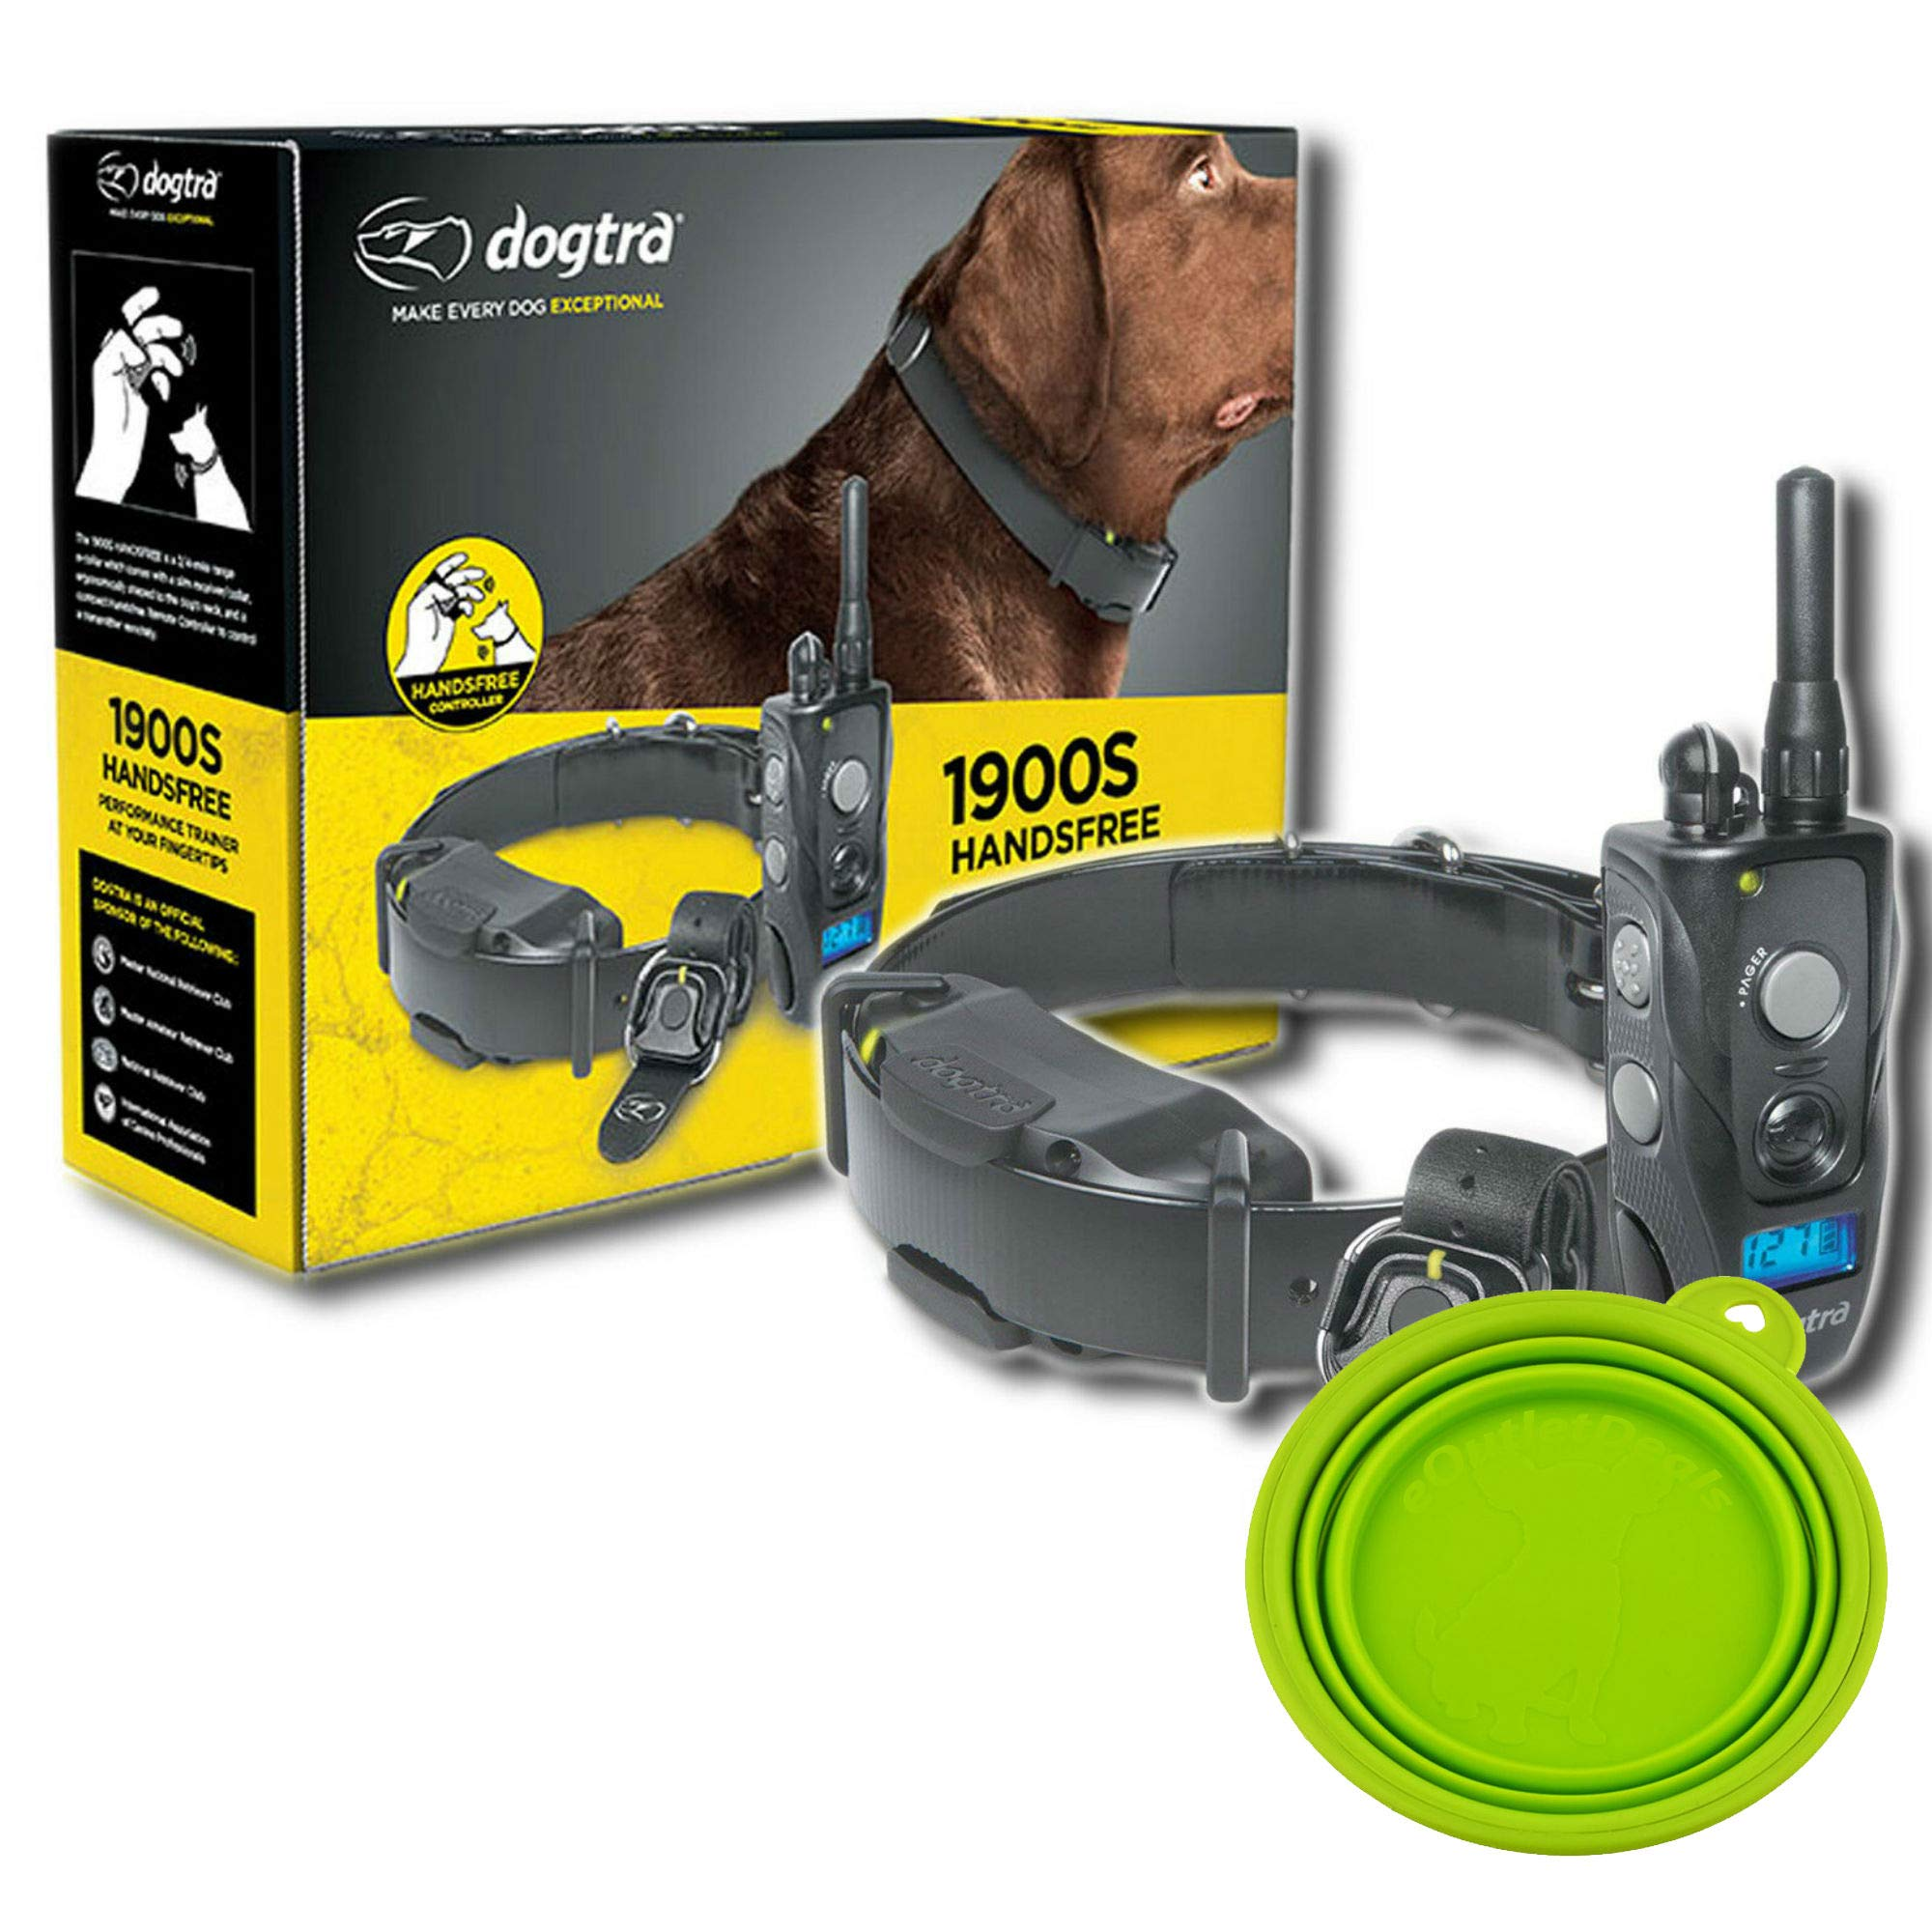 Dogtra 1900S HANDSFREE E-Collar Training For Dogs - 3/4 Mile Remote Trainer with LCD Screen - Remote Controller - Fully Waterproof Collar - Bonus eOutletDeals Travel Bowl